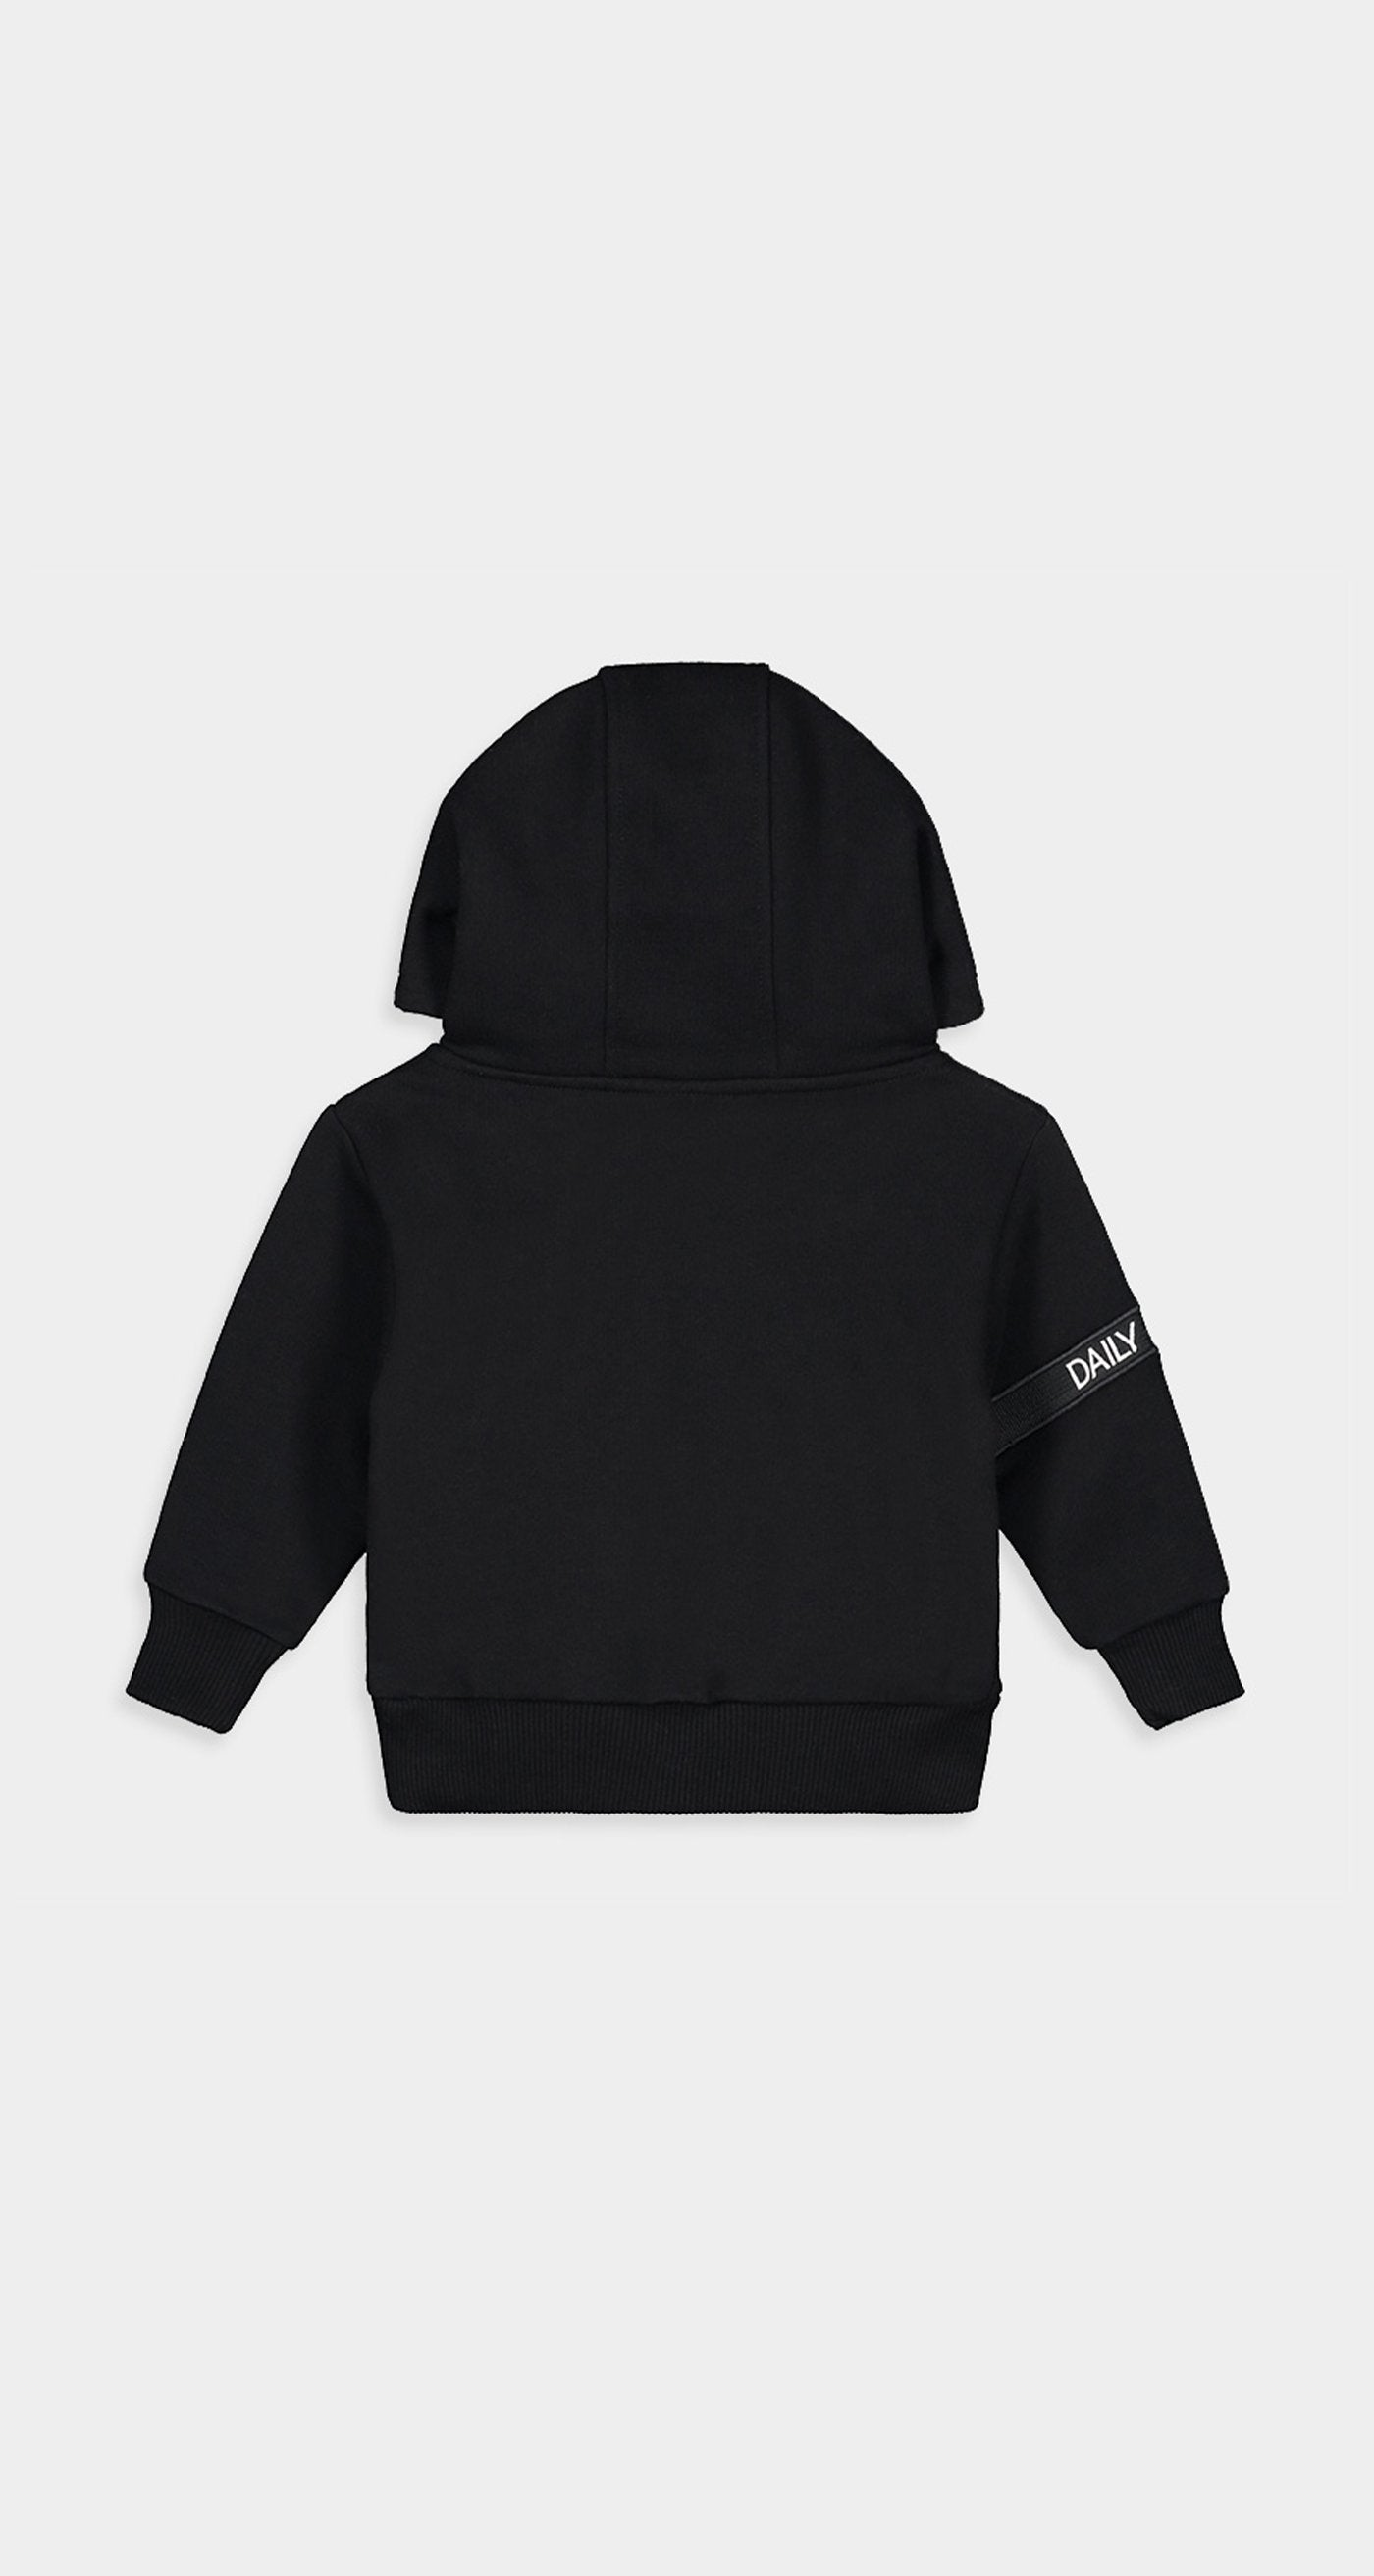 Daily Paper - Black Kids Captain Hoody Rear